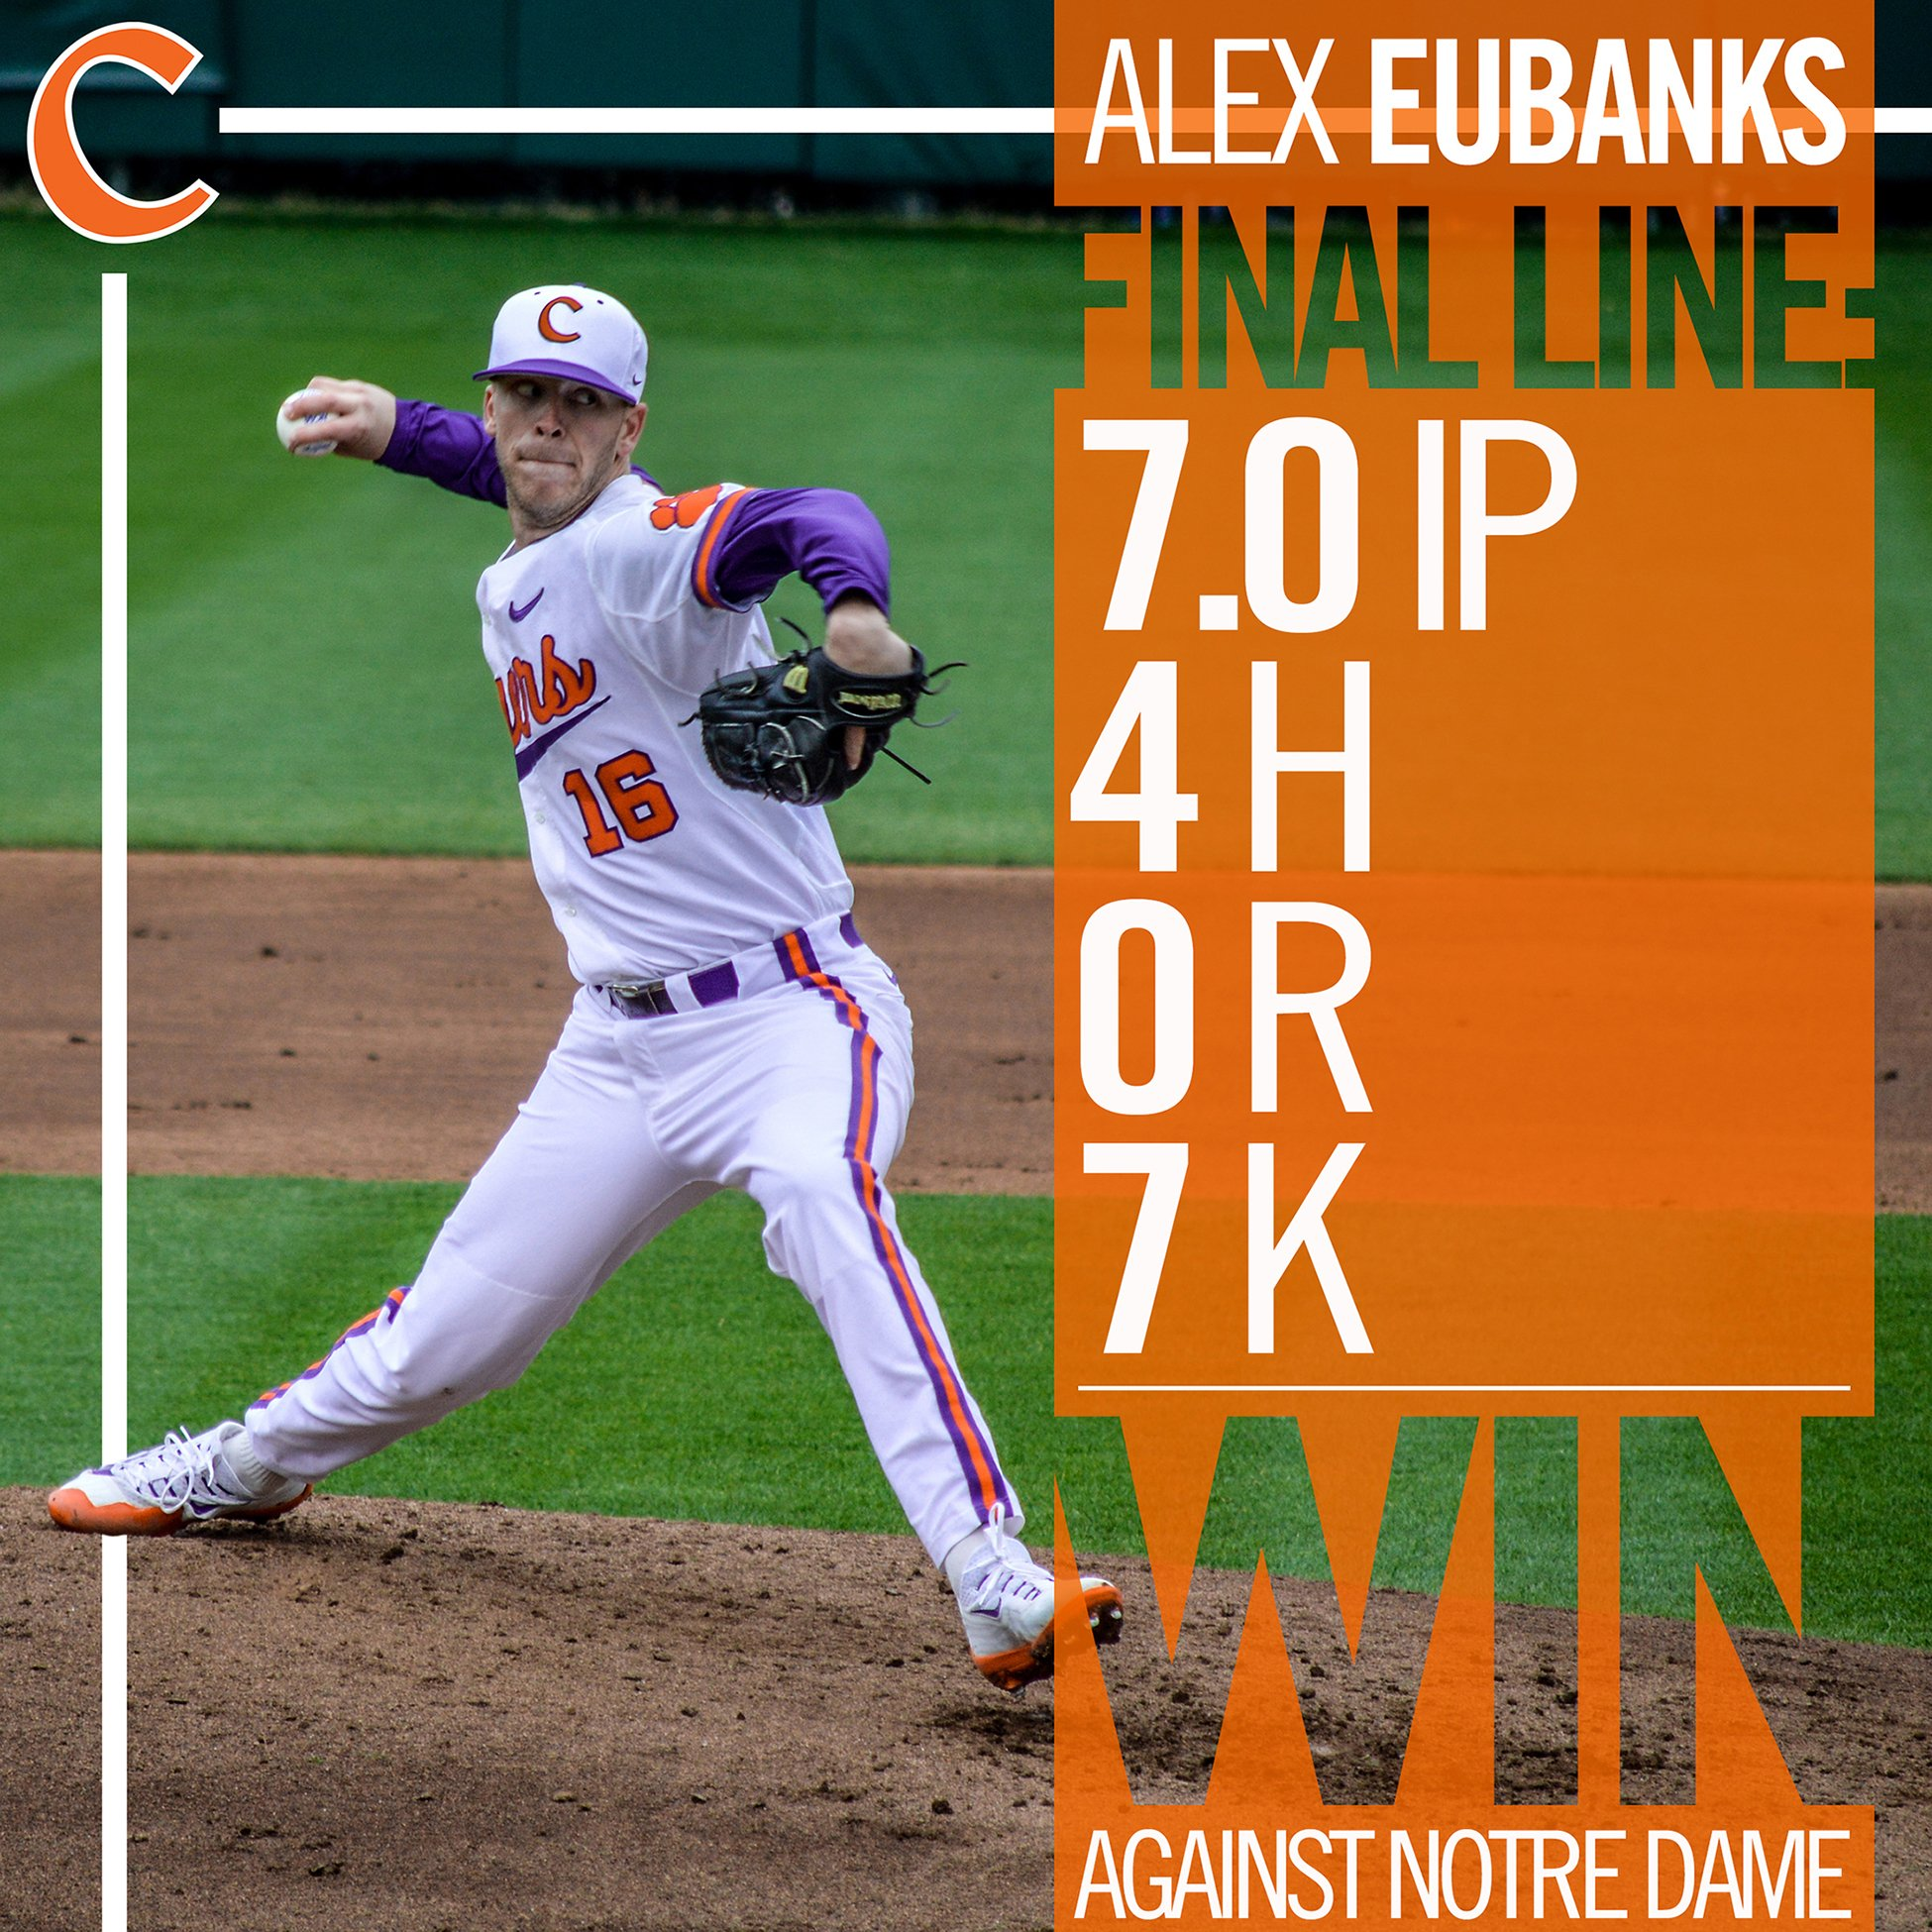 #Clemson sweeps Notre Dame thanks to its 4-0 win on Sunday, keyed by another stellar outing by Alex Eubanks. https://t.co/15CRra18m3